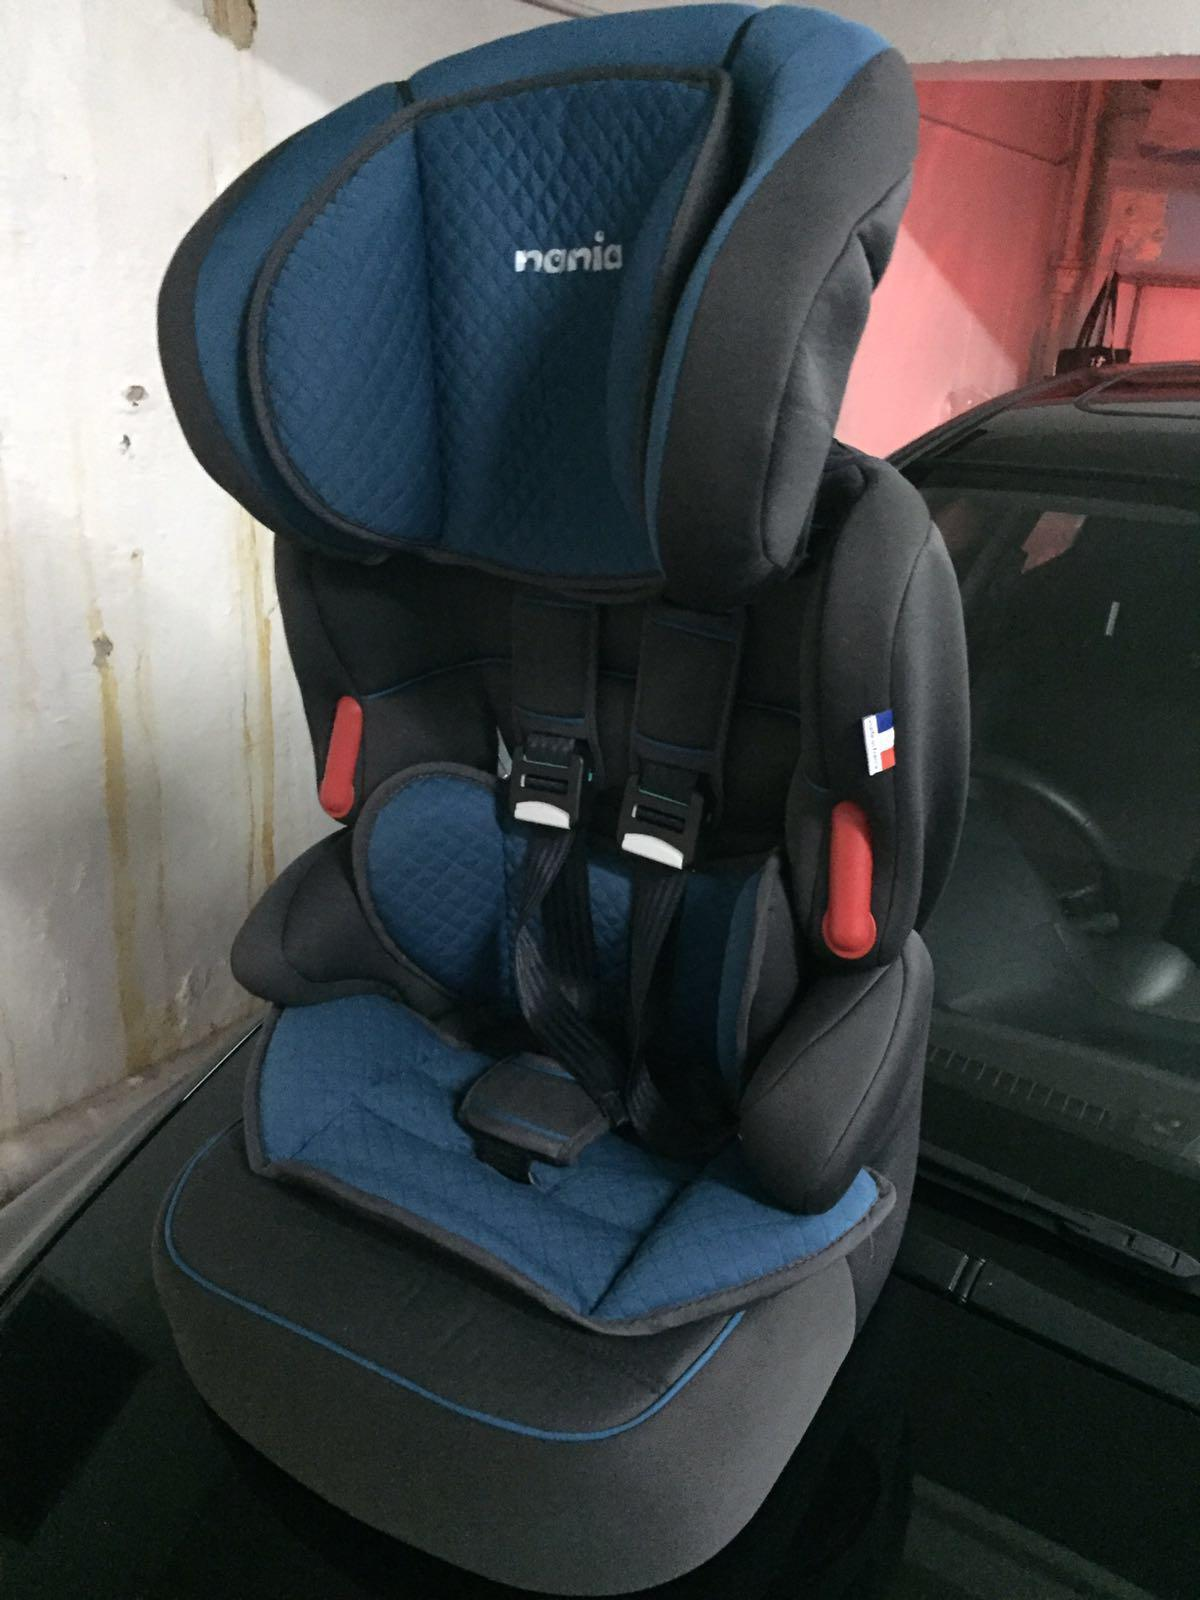 99 99 New Carseat Sit On It Once Only Bought From Toys R Us Original Price Hkd1399